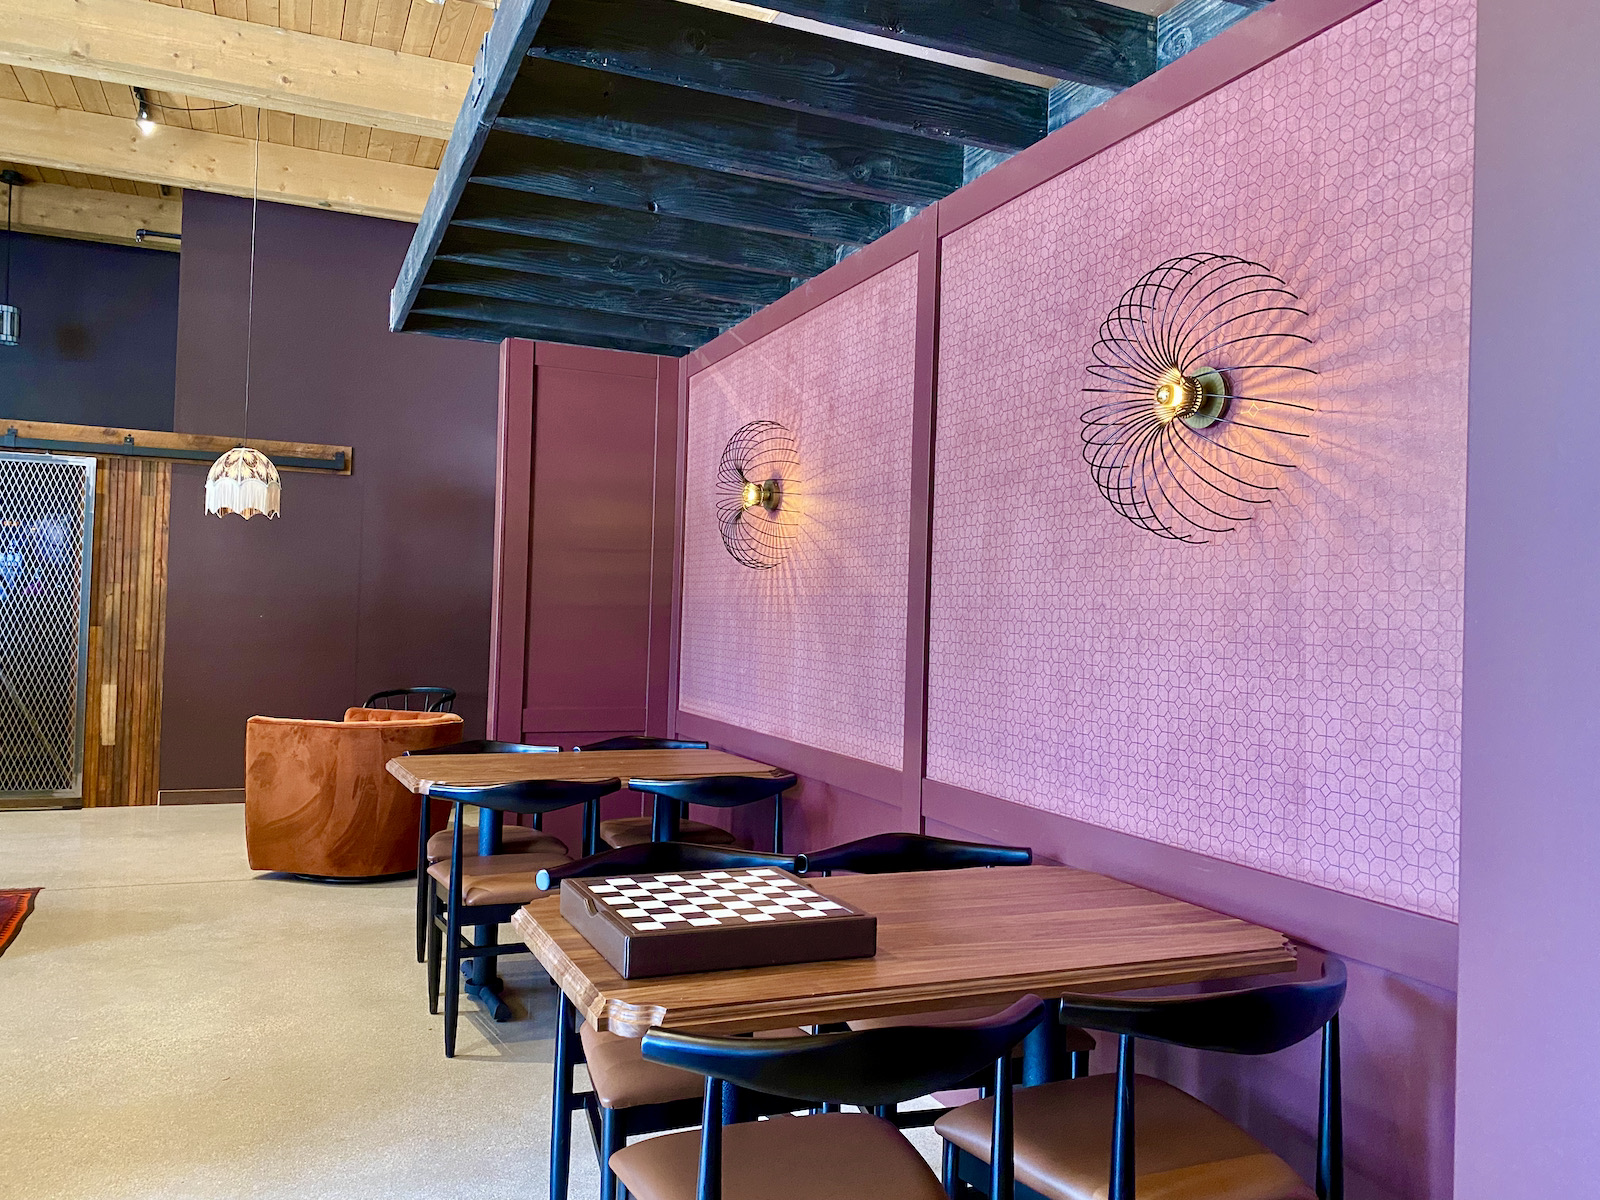 Seating area with purple accents